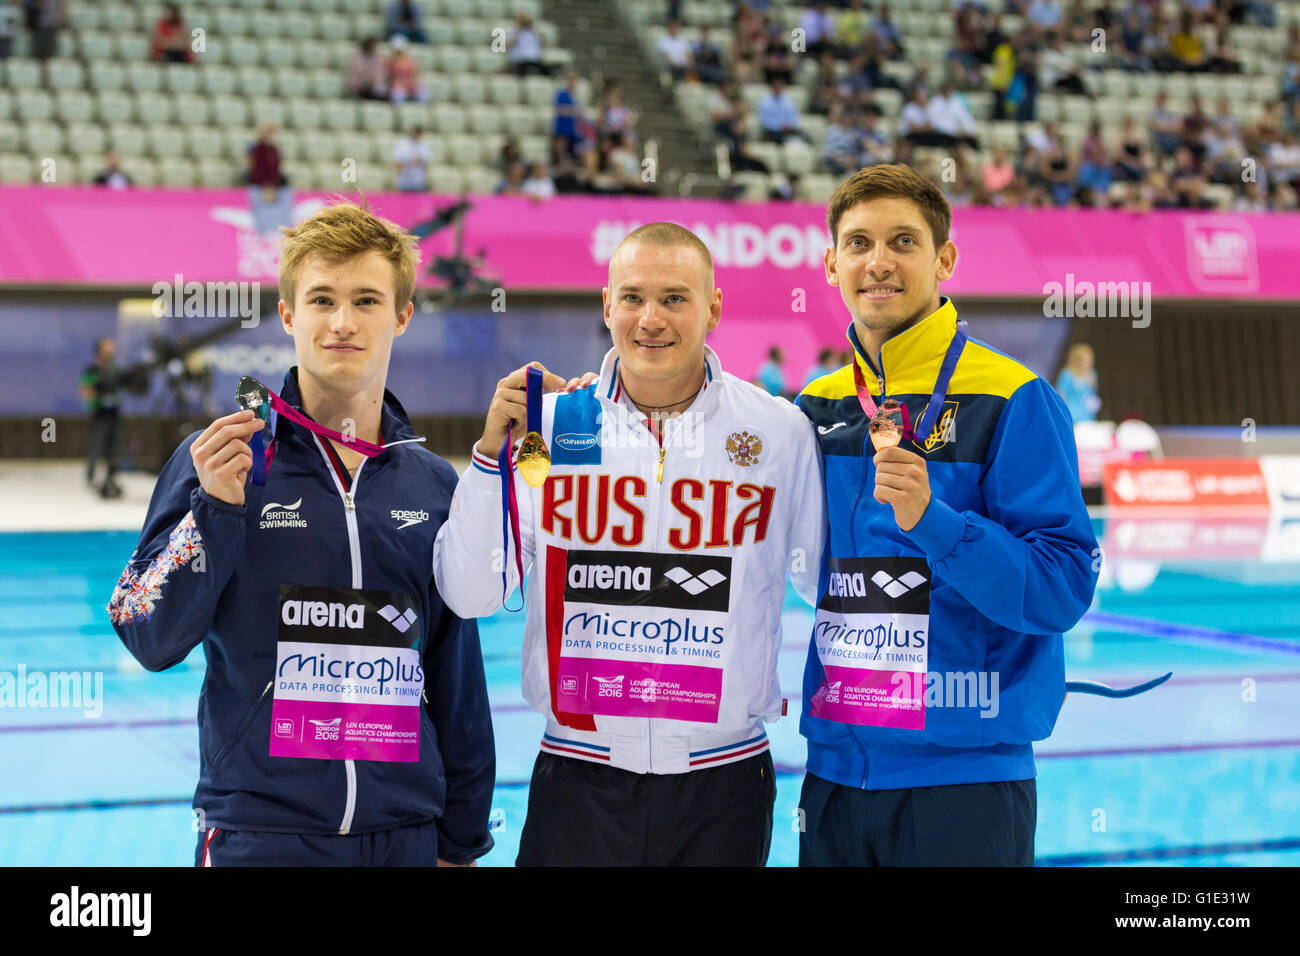 Aquatics Centre, Olympic Park, London, UK. 12th May 2016. The three medallists. Russia's Evgeny Cuznetsov takes - Stock Image